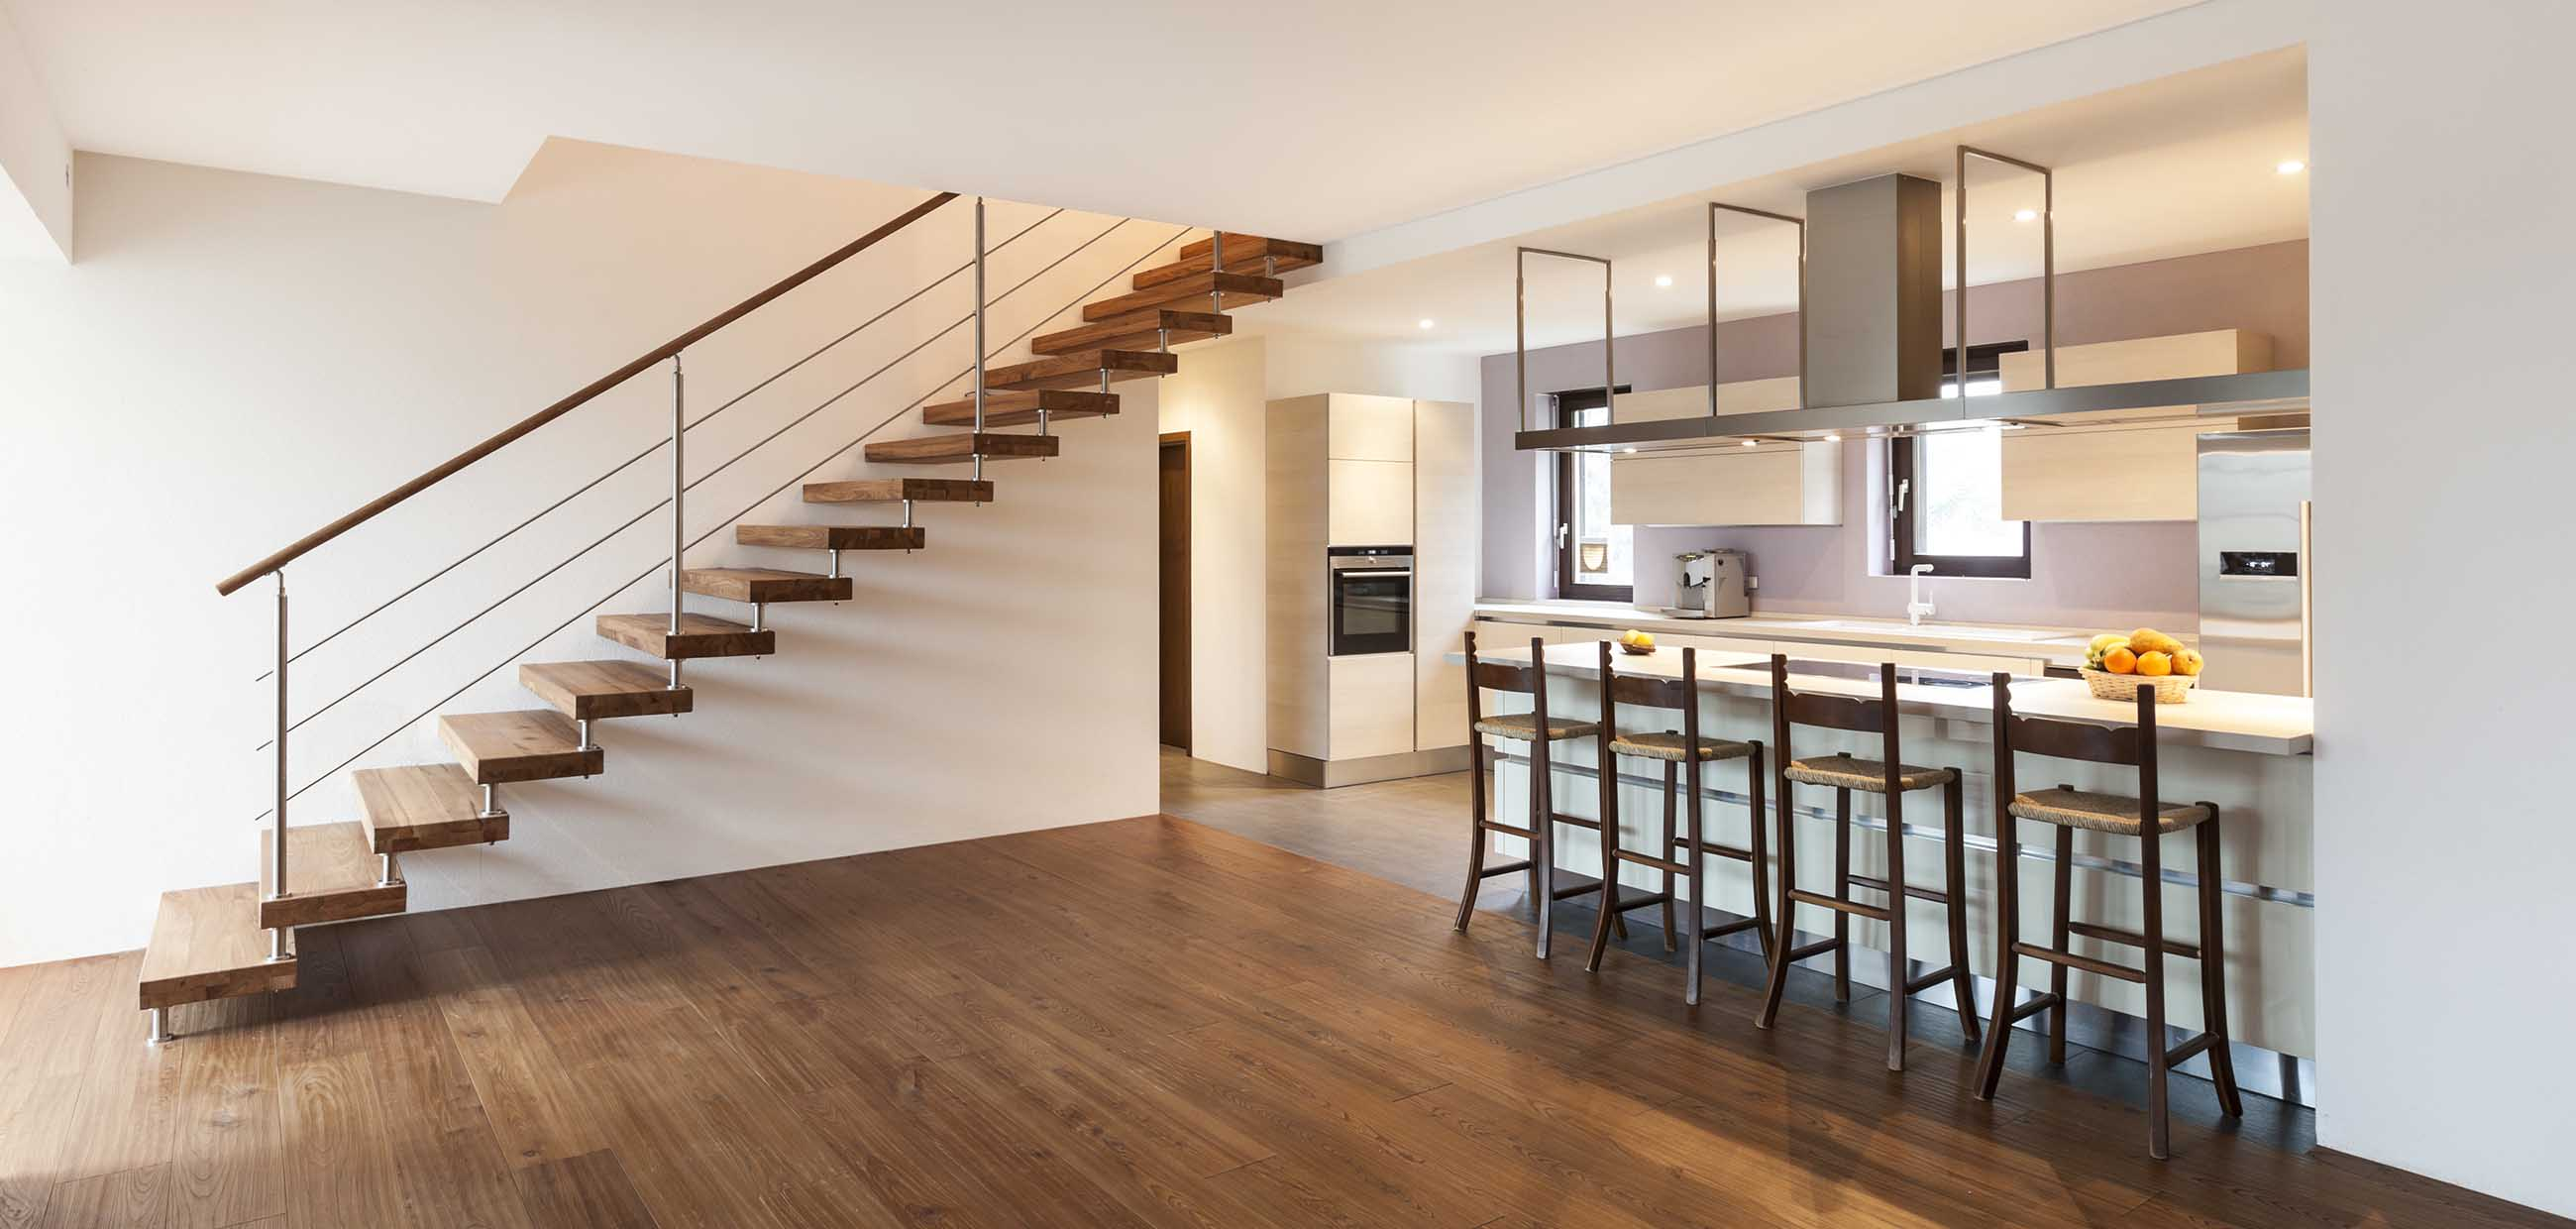 Cambridge Letting Agency- fabulous kitchen counter and stairs